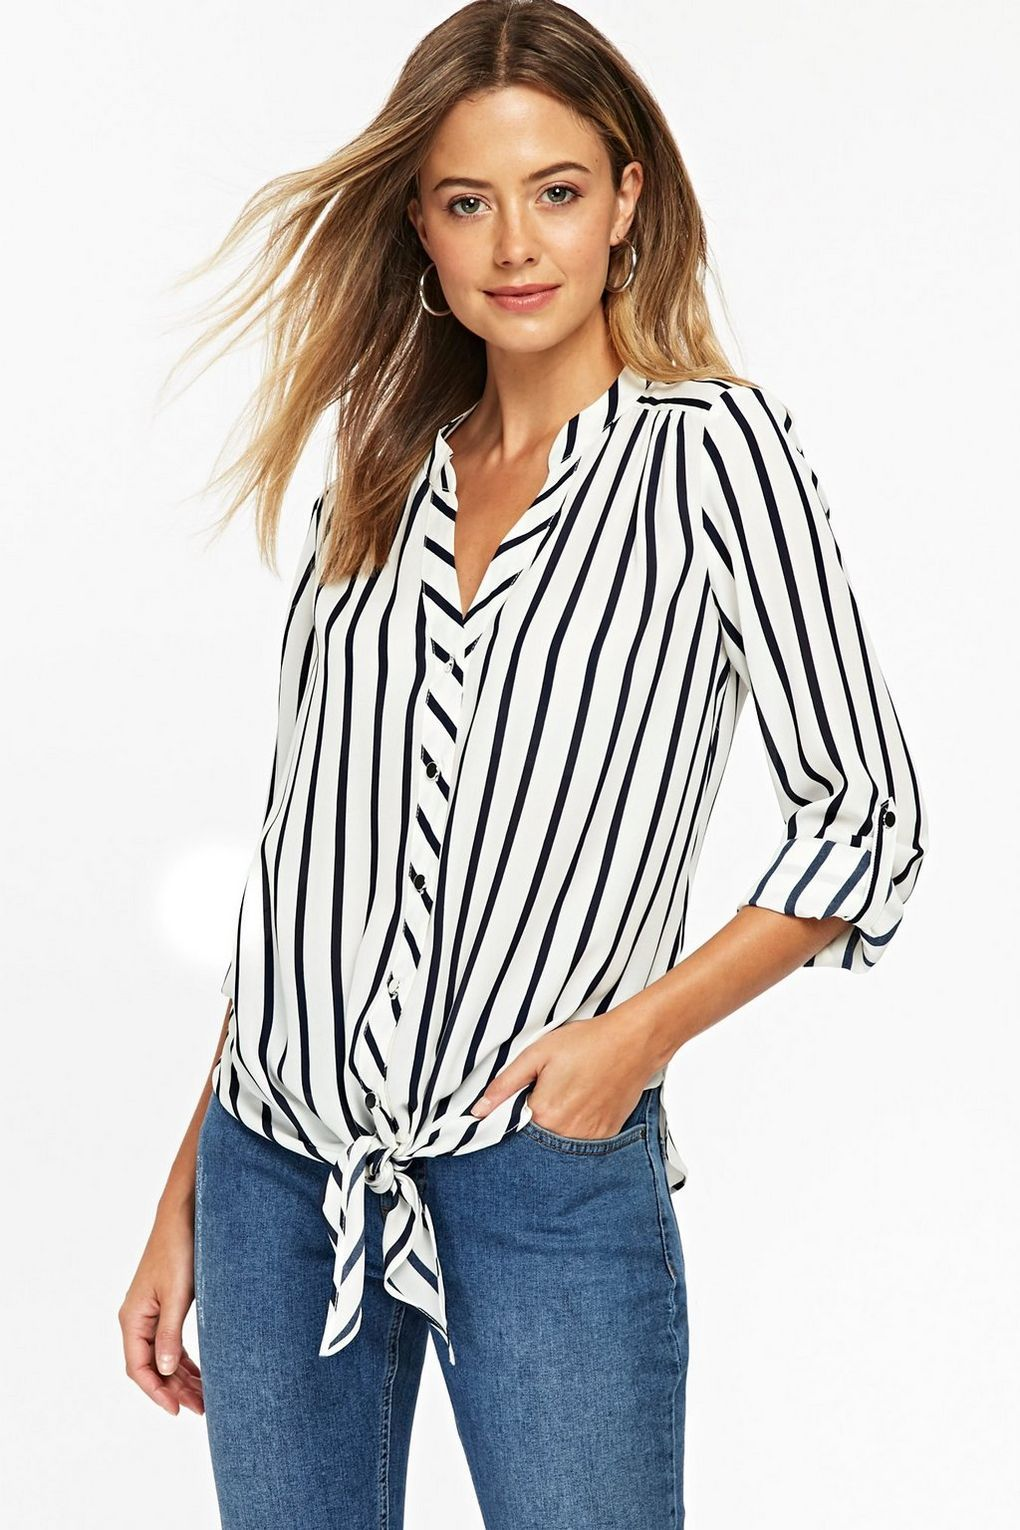 24833751605e1 Keep it casual in a striped tie-front shirt | Wallis Petite Monochrome Tie  Front Top | #WallisFashion #WallisLoves #Monochrome #PetiteFashion #Stripes